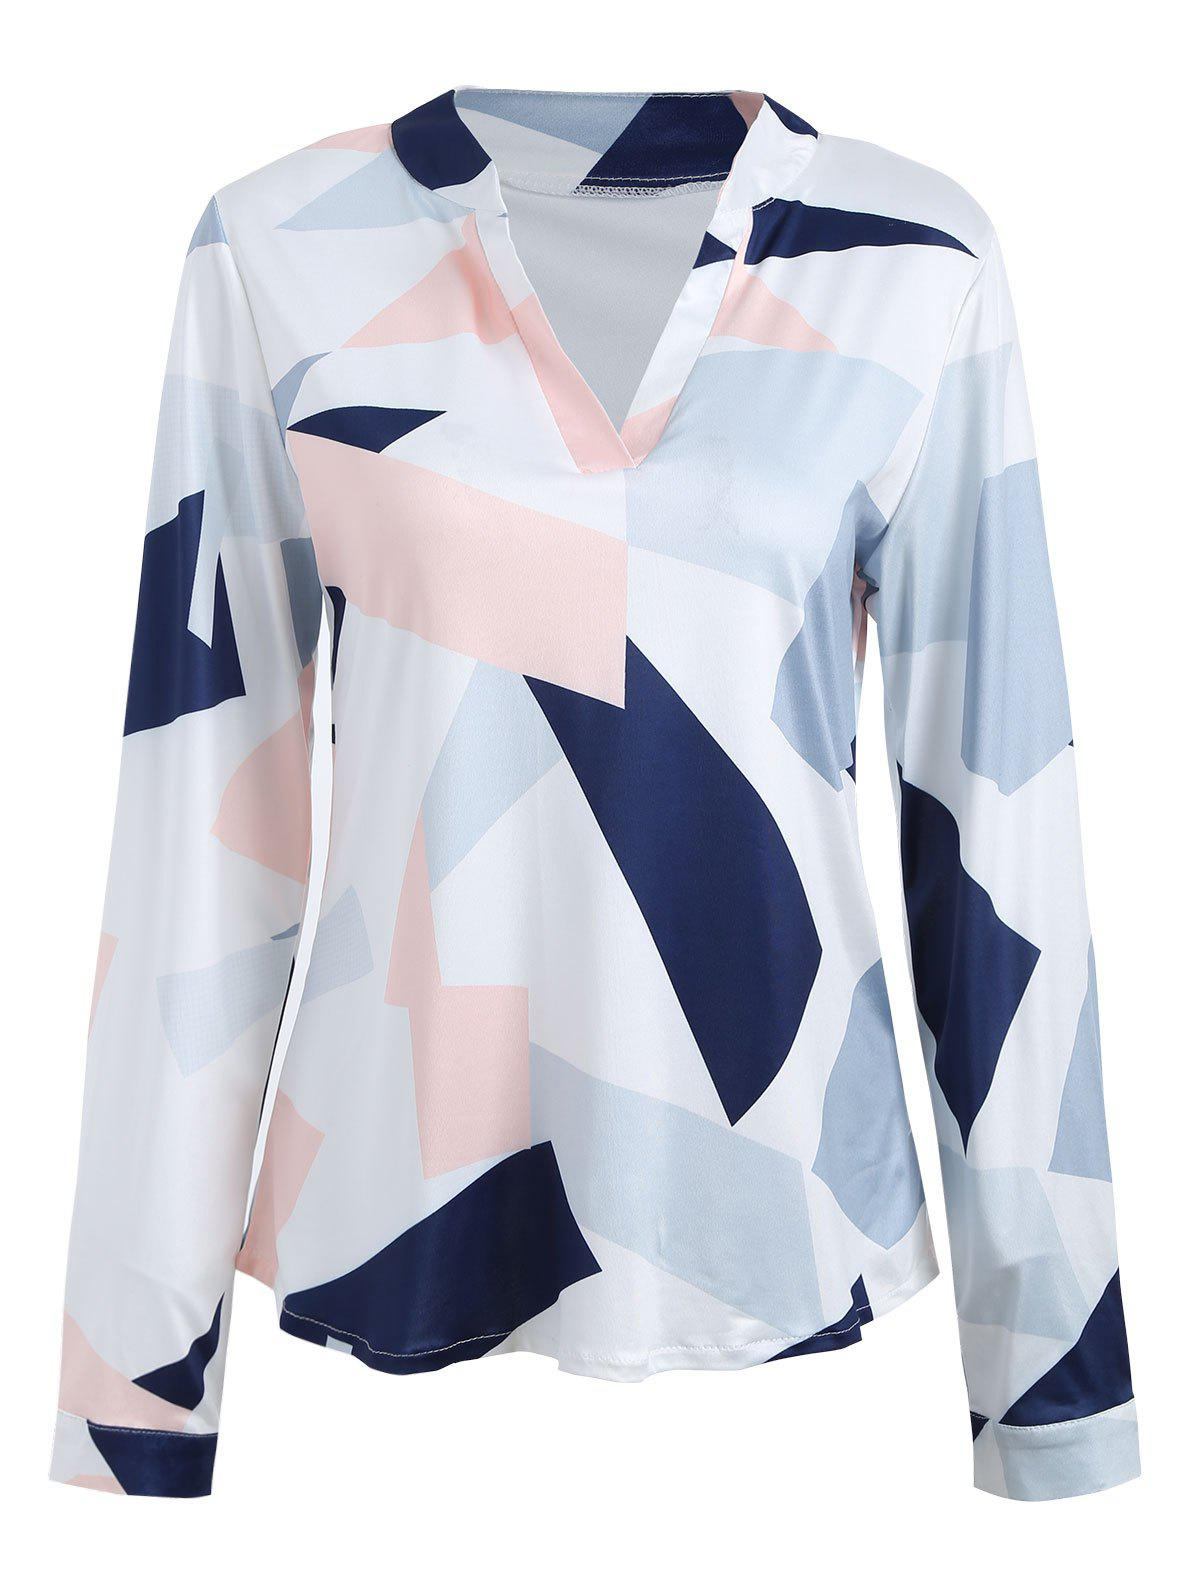 Color Block V Neck Long Sleeve BlouseWOMEN<br><br>Size: M; Color: COLORMIX; Style: Casual; Material: Polyester,Spandex; Shirt Length: Regular; Sleeve Length: Full; Collar: V-Neck; Pattern Type: Print; Season: Fall,Spring; Elasticity: Elastic; Weight: 0.2400kg; Package Contents: 1 x Blouse;